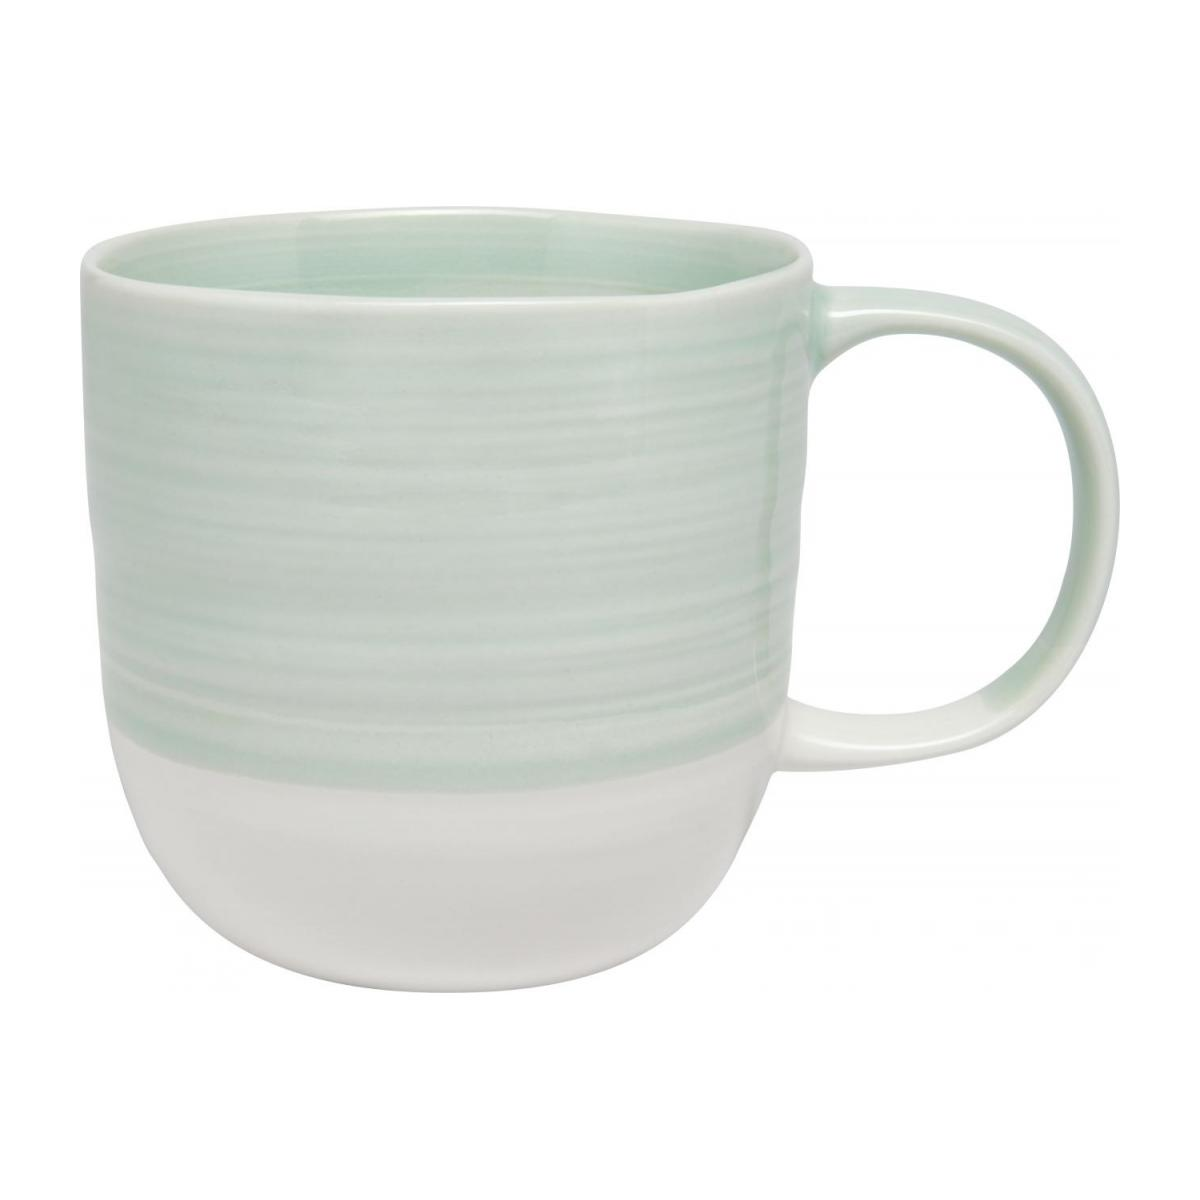 Mug made of porcelain celadon n°2